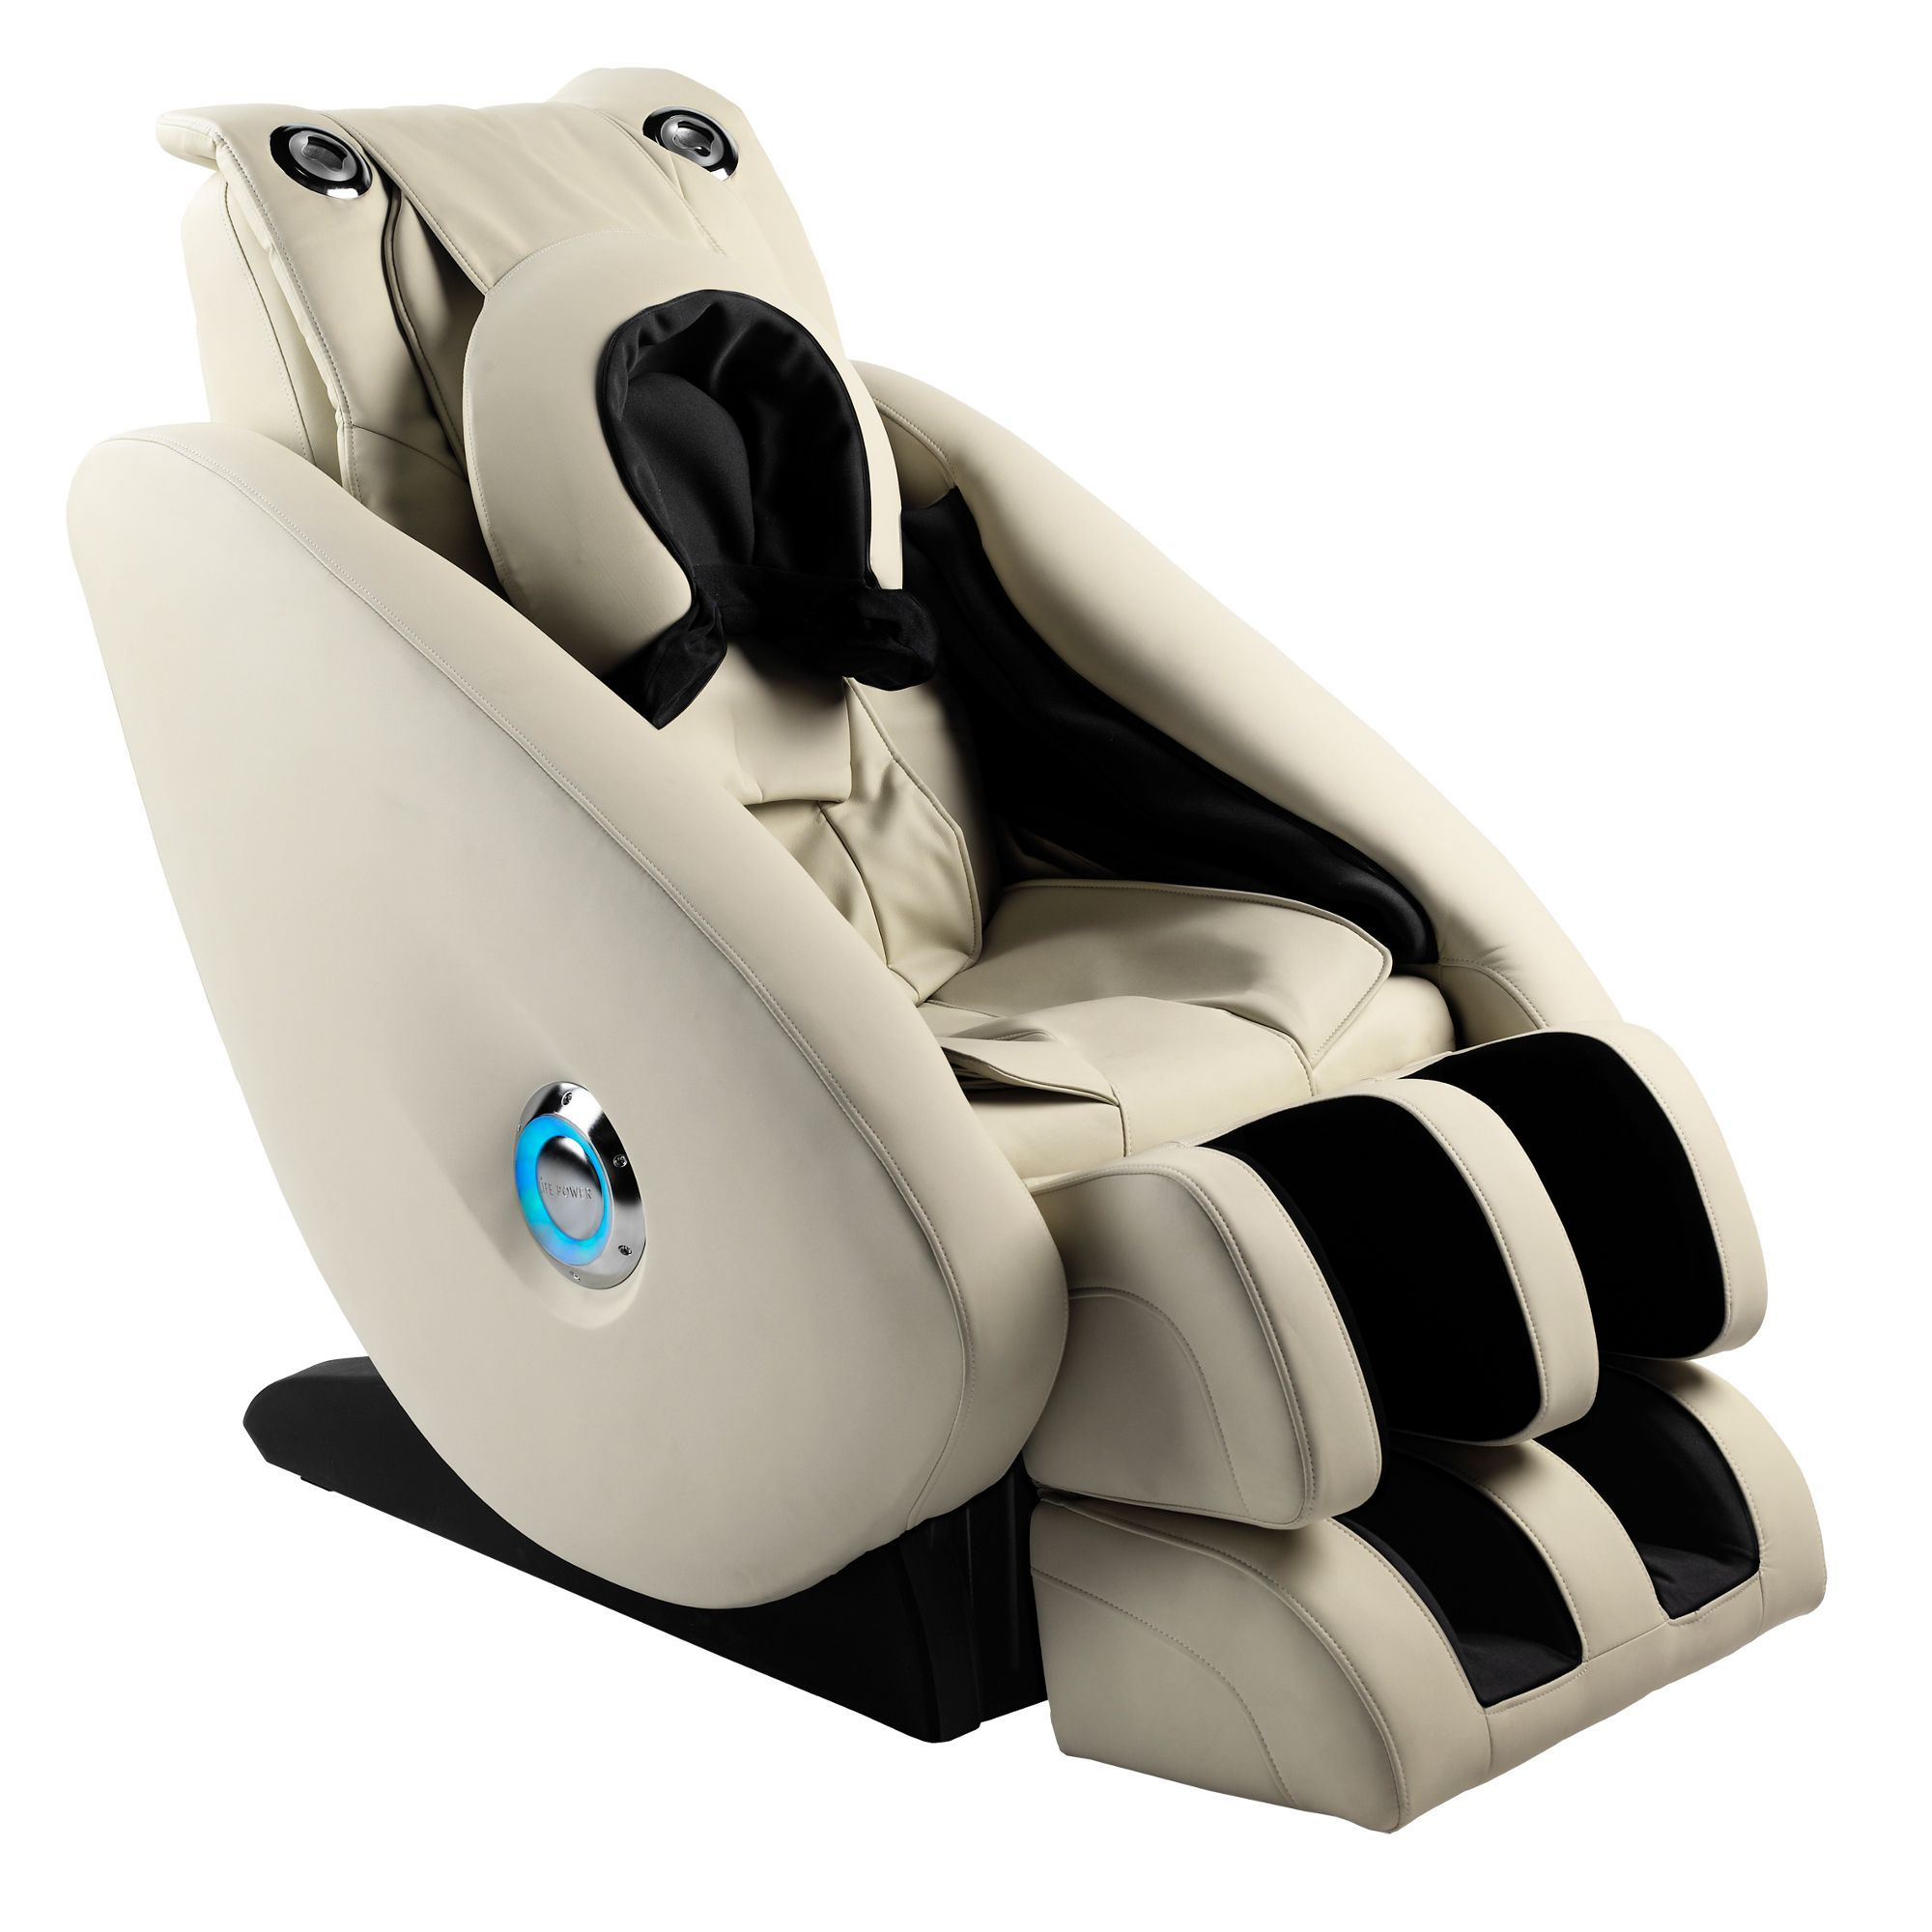 BH Shiatsu M1200 Scala Massage Chair - Sweatband.com